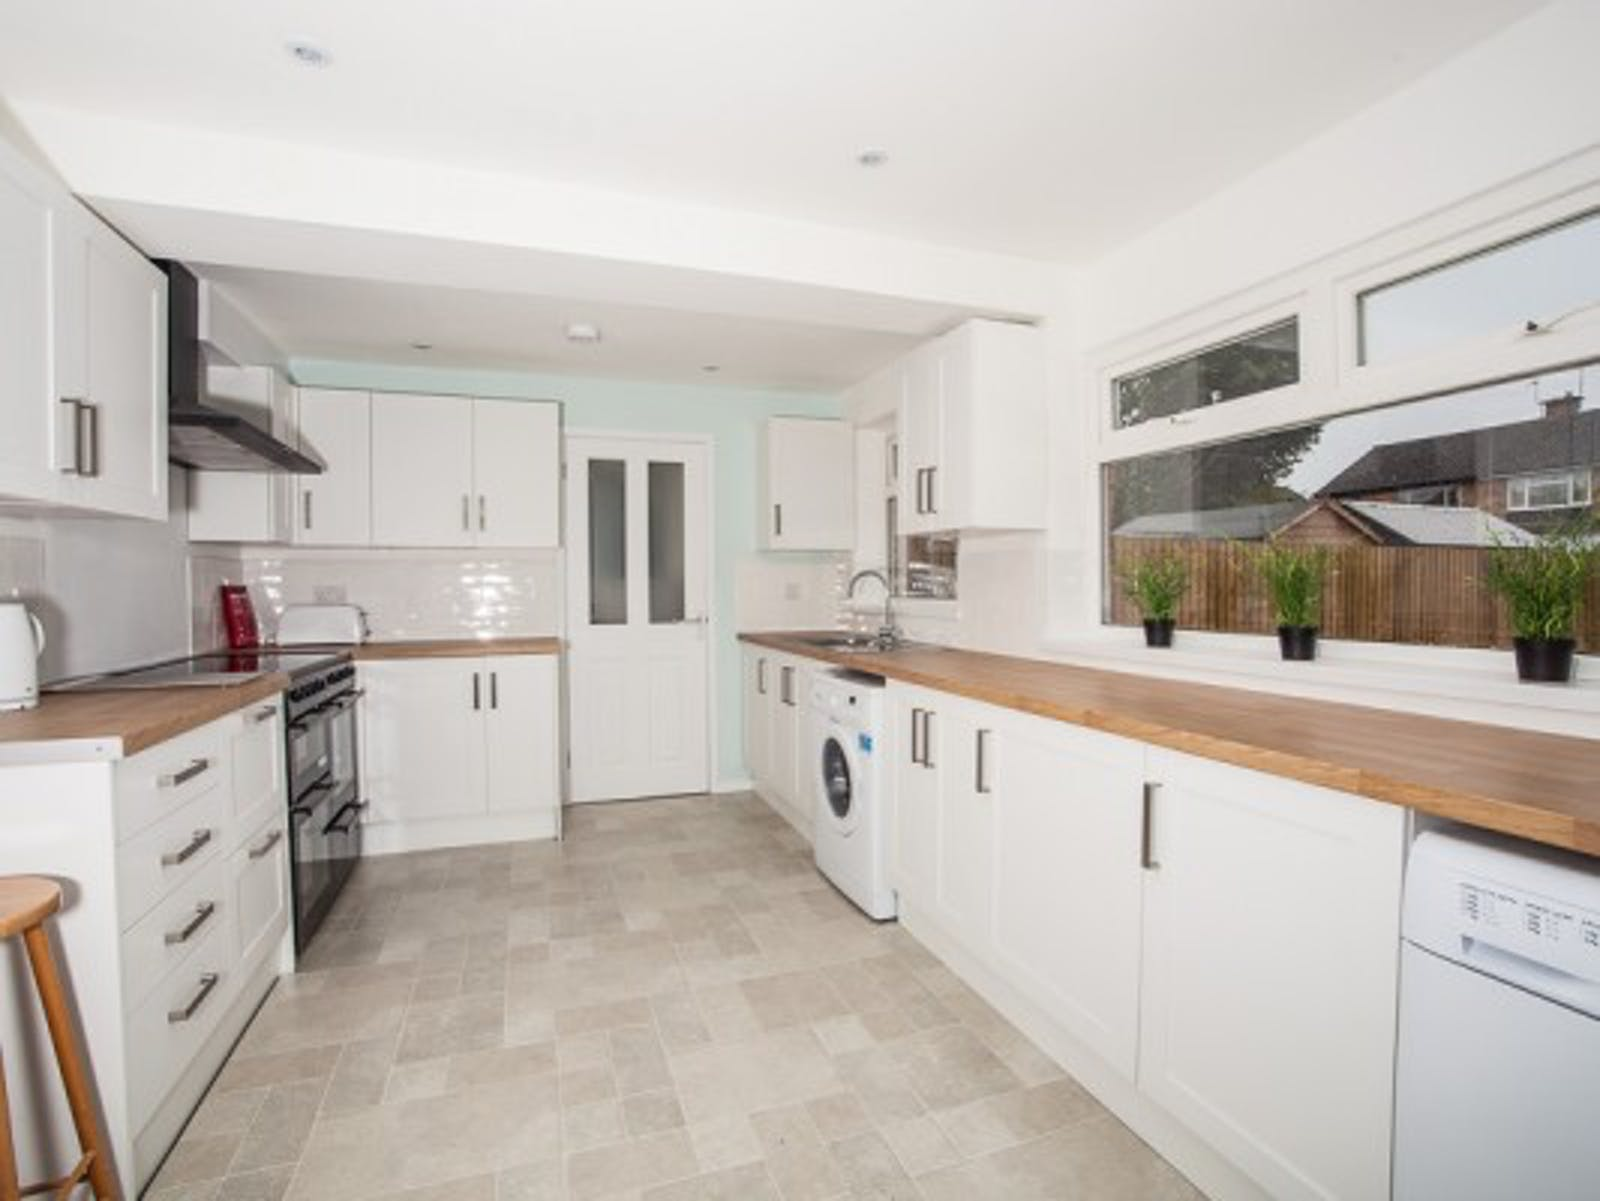 Rooms to Let - Daily Info